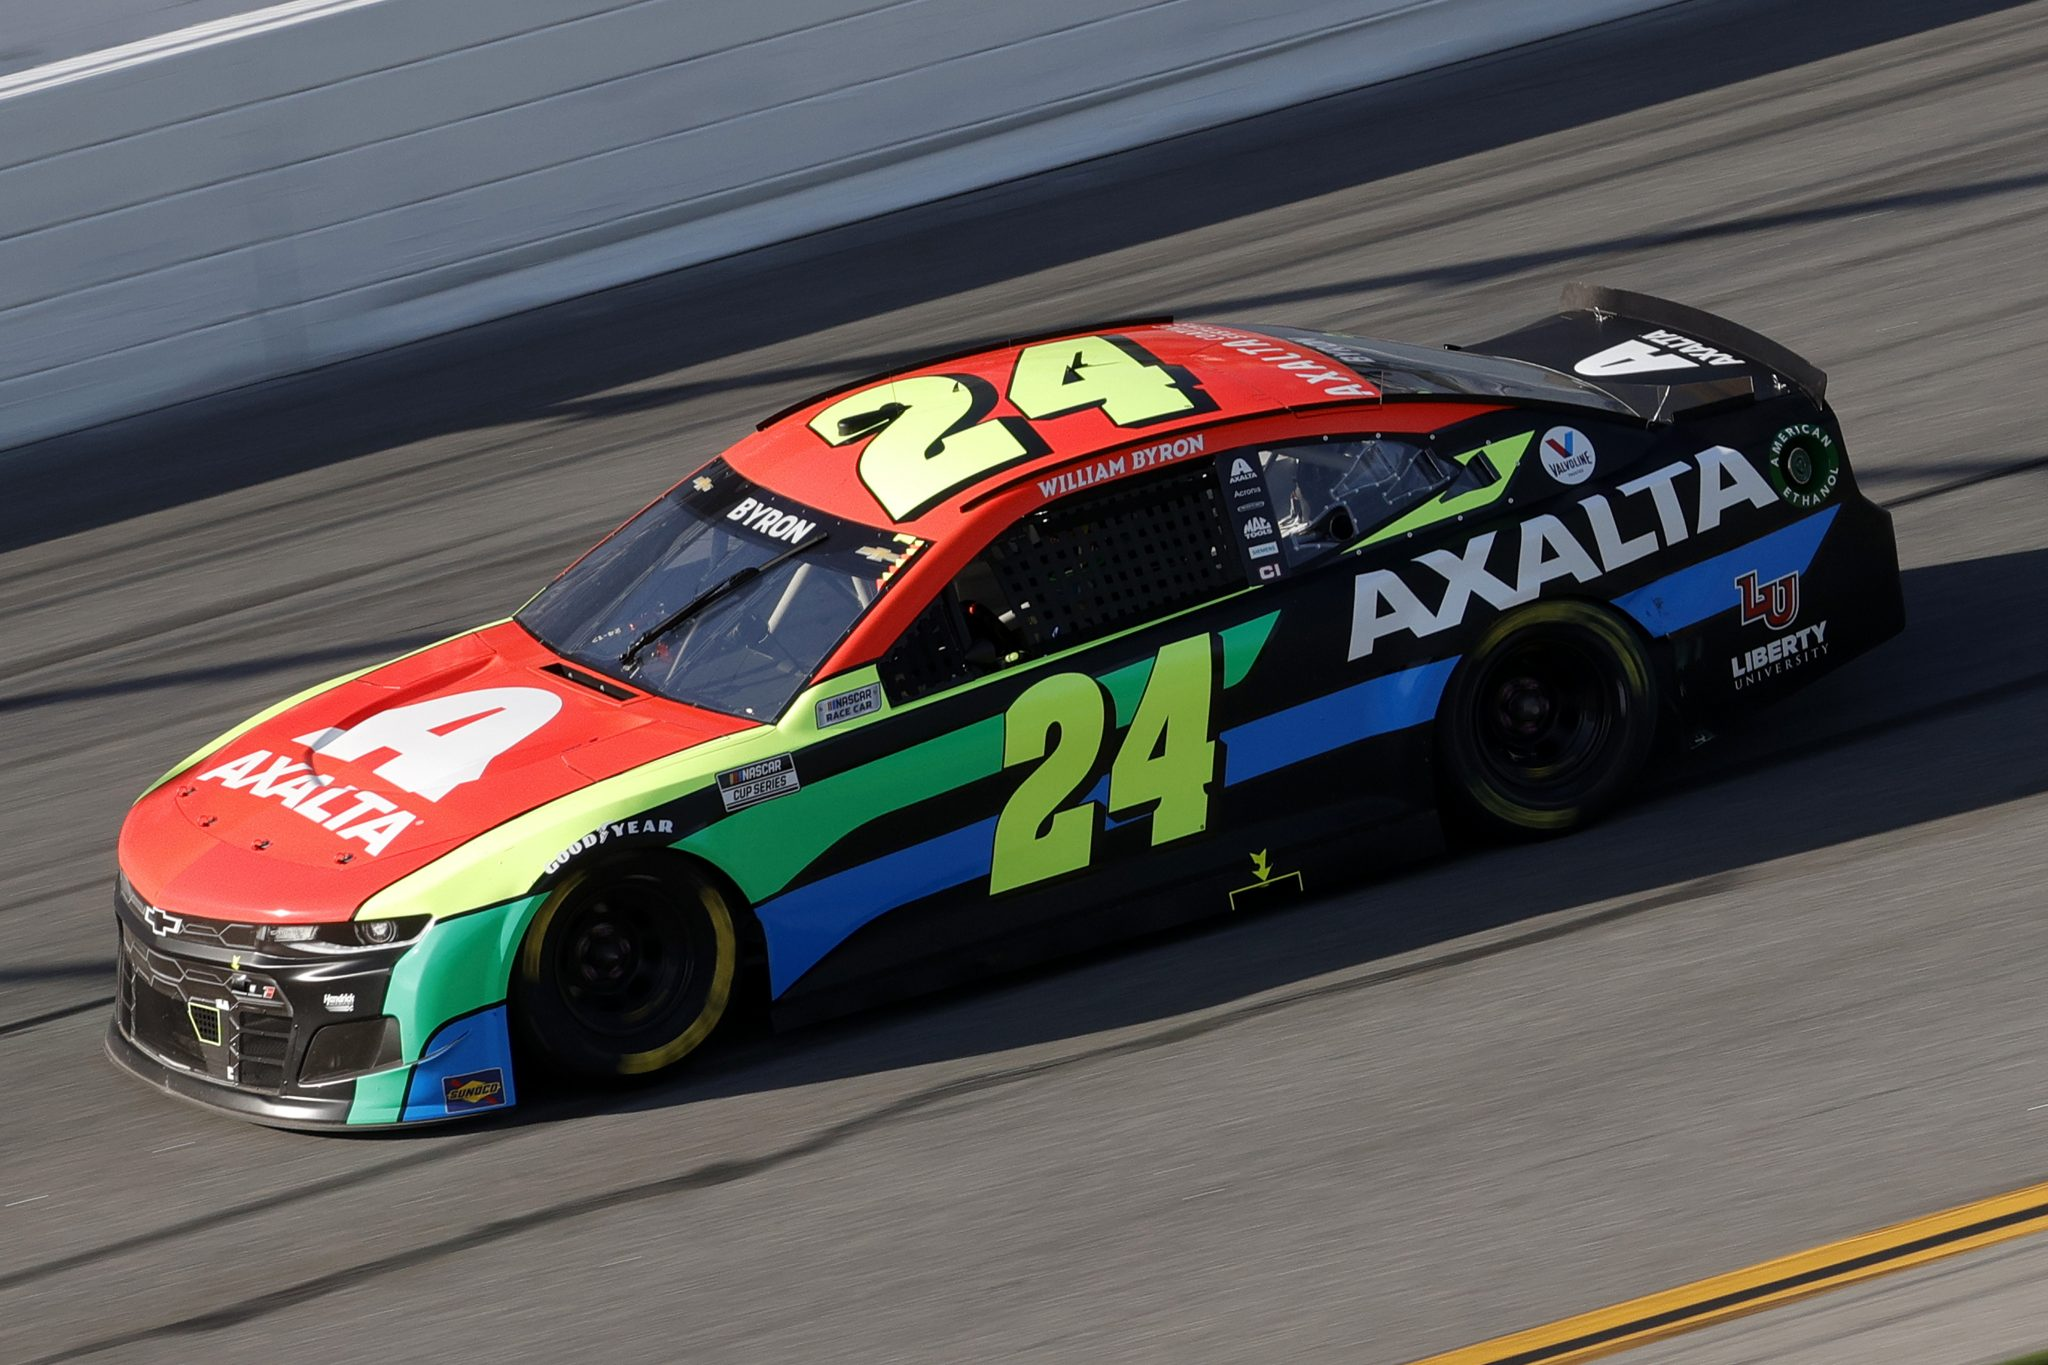 DAYTONA BEACH, FLORIDA - FEBRUARY 21: William Byron, driver of the #24 Axalta Chevrolet, drives during the NASCAR Cup Series O'Reilly Auto Parts 253 at Daytona International Speedway on February 21, 2021 in Daytona Beach, Florida. (Photo by Chris Graythen/Getty Images) | Getty Images